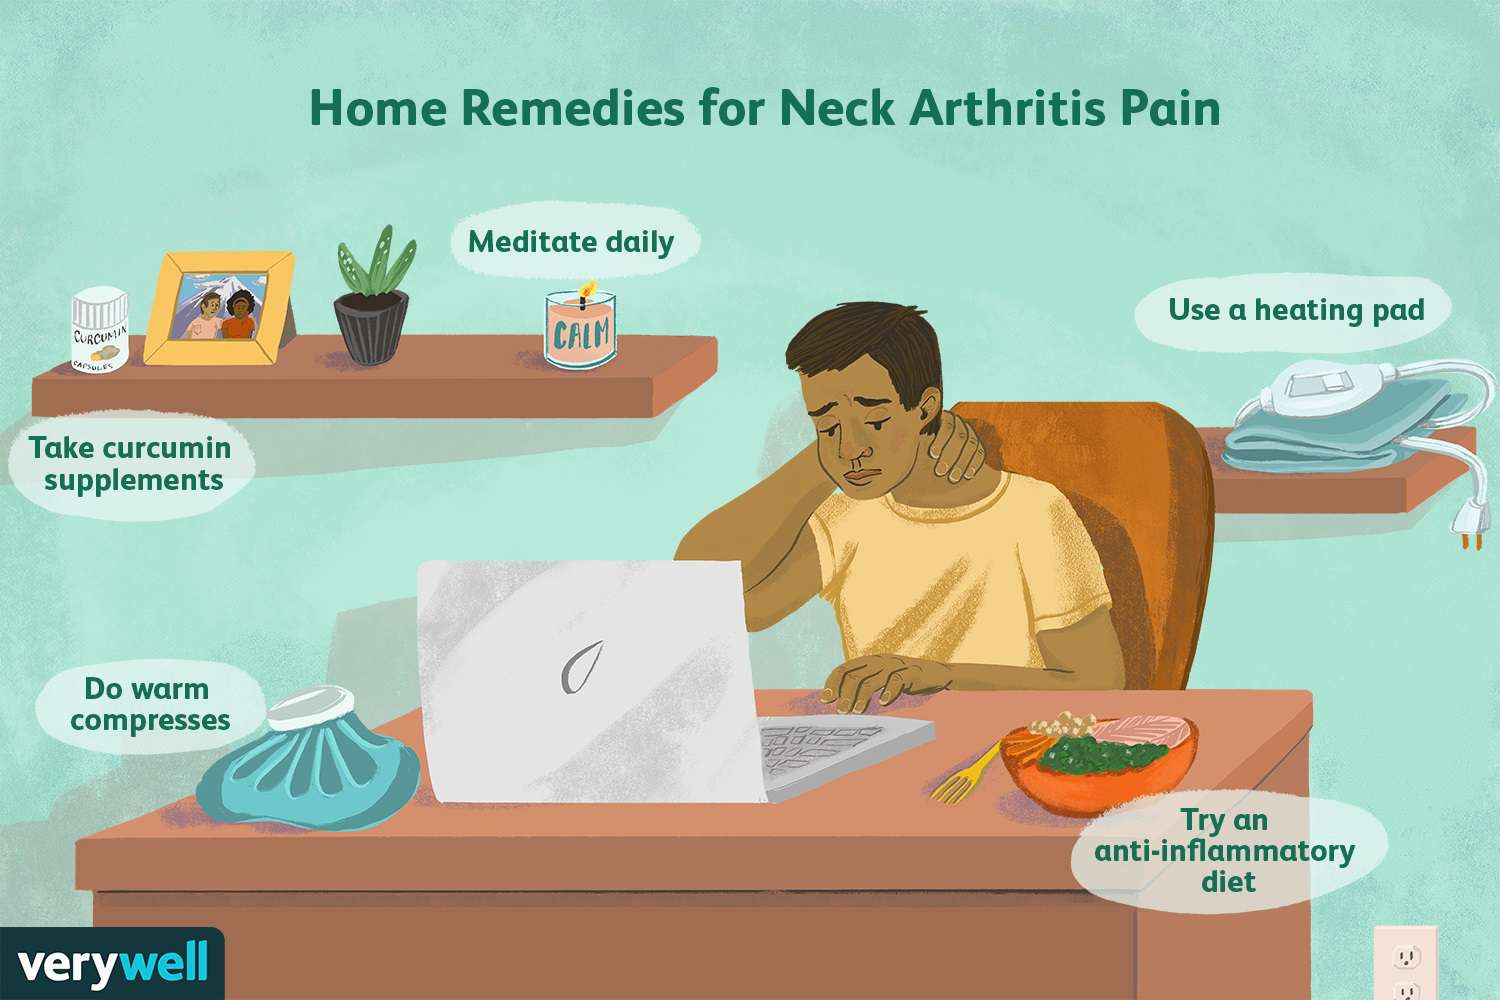 Home Remedies for Neck Arthritis Pain